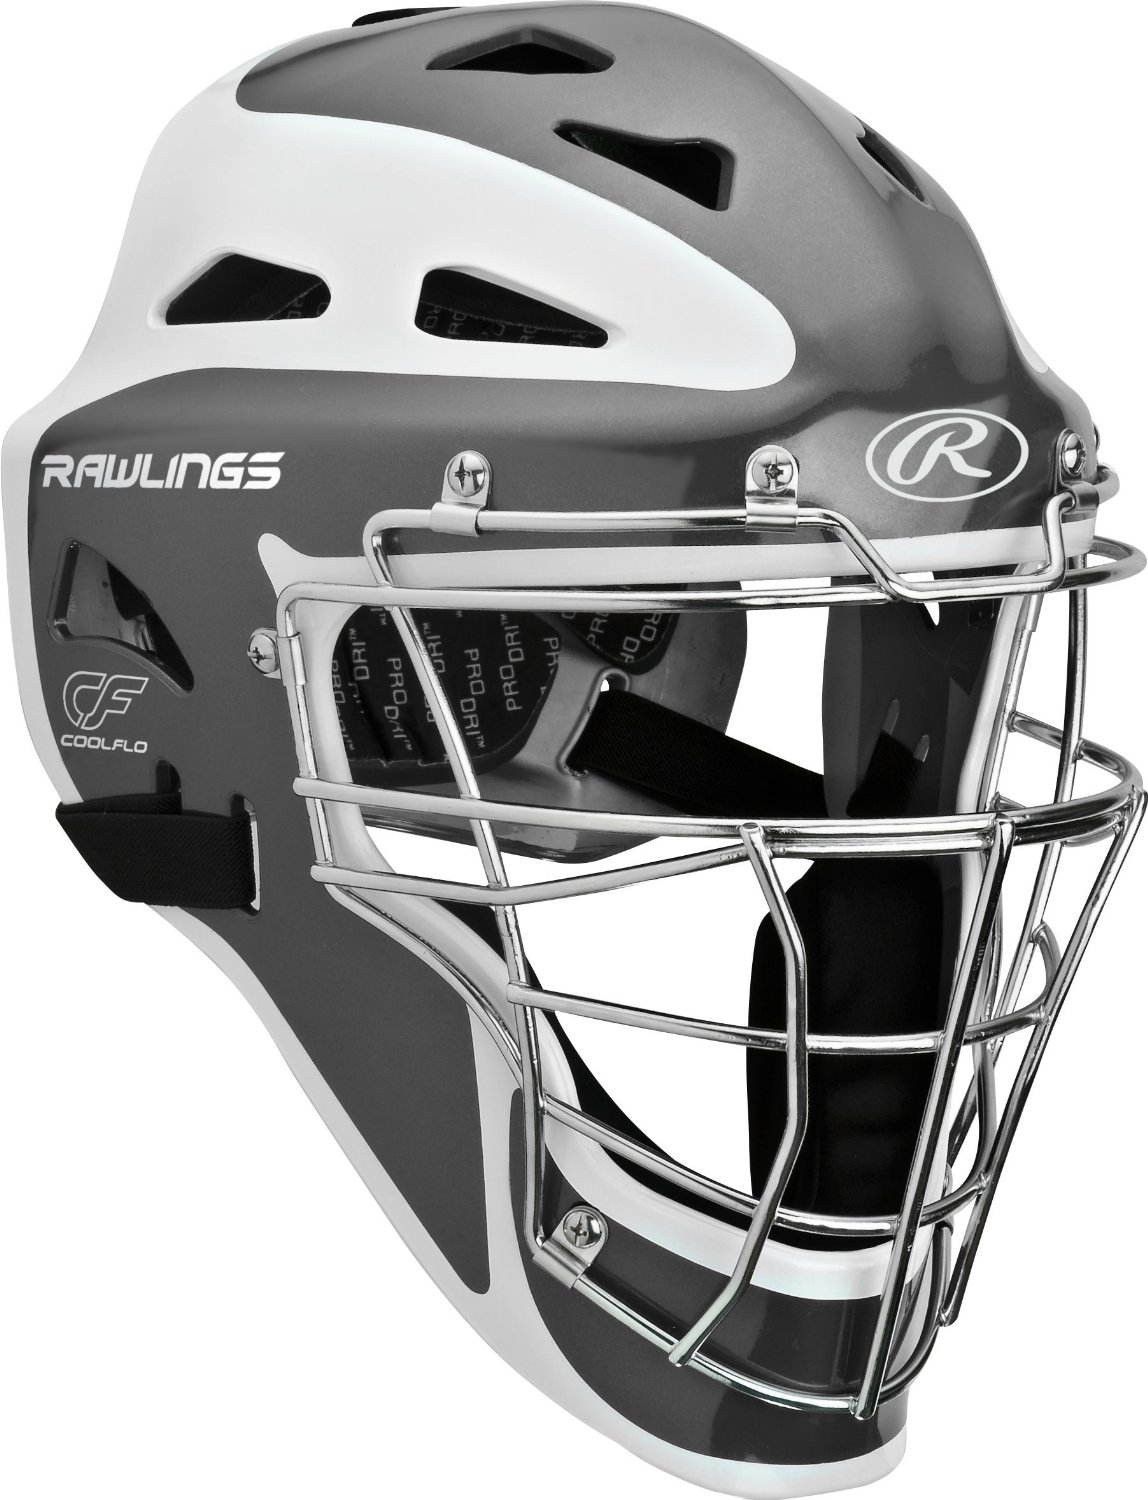 Rawlings Pro Preferred CoolFlo Youth baseball catchers gear helmet mask Graphite by